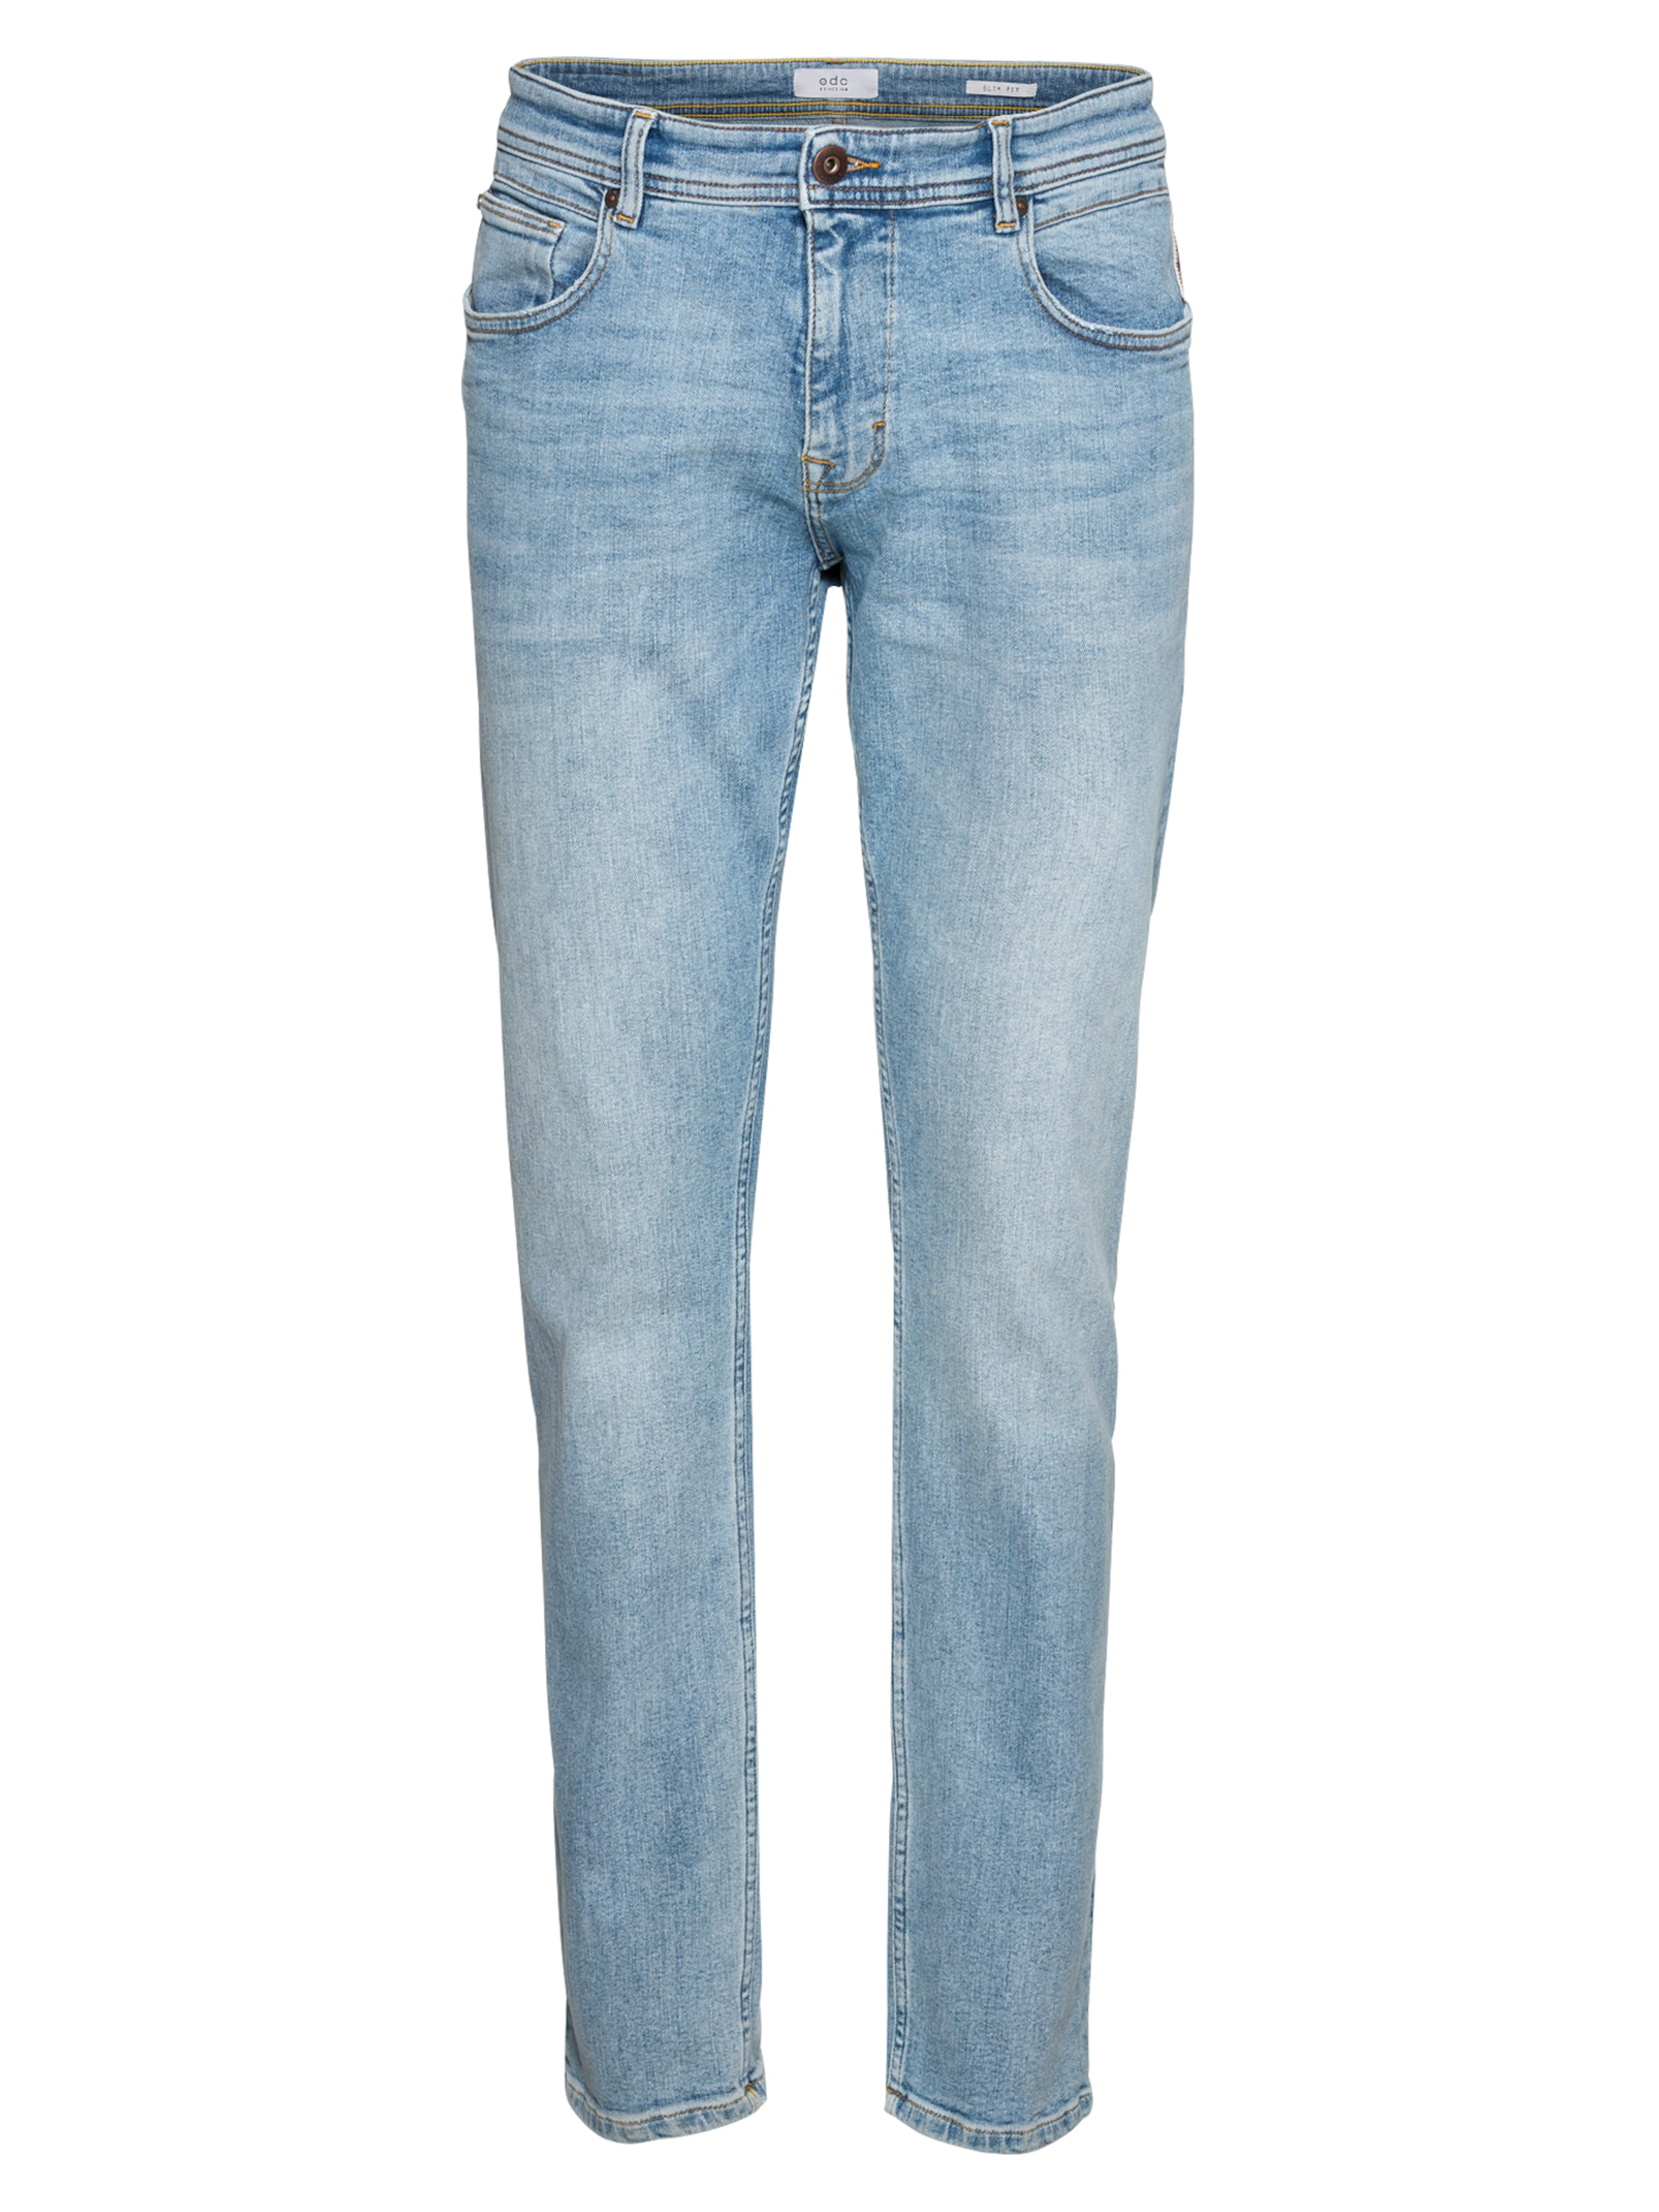 Denim Esprit By Pkt Pants 5 Slim 'ocs Denim' En Bleu Jean Edc iuZPkX